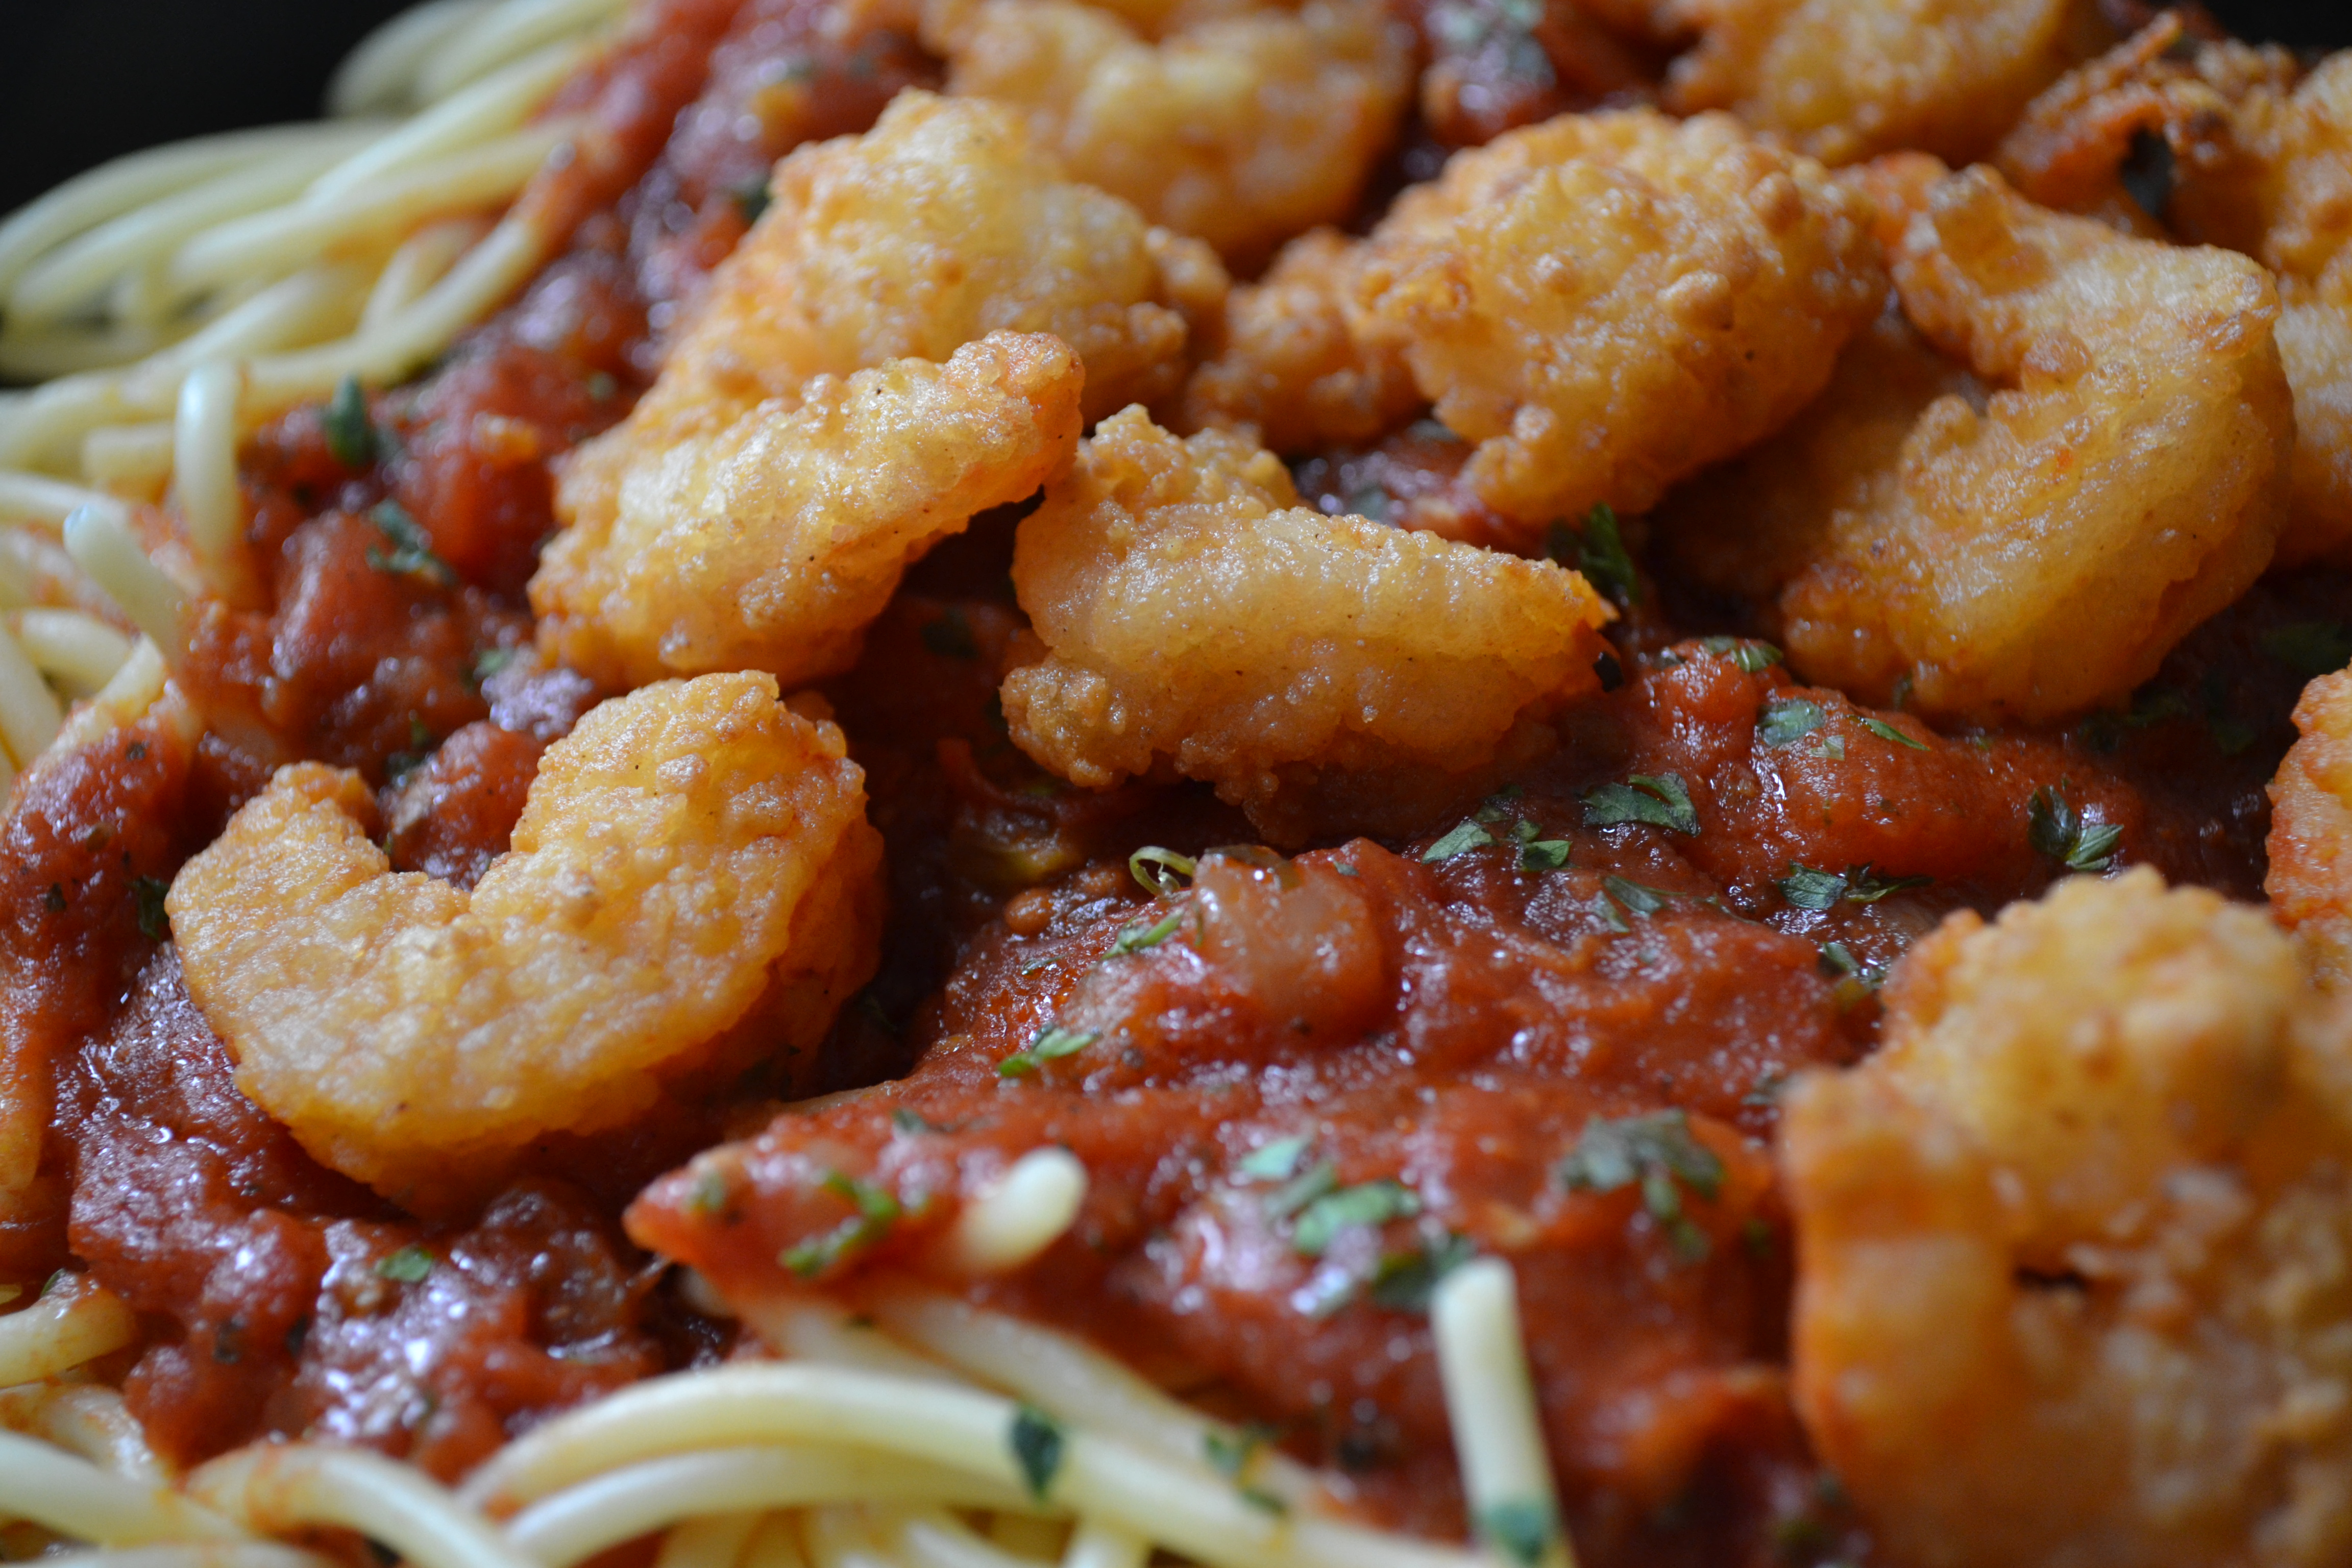 Day 8 – Spaghetti with Marinara and Shrimp Fritta | 49 Days of Pasta